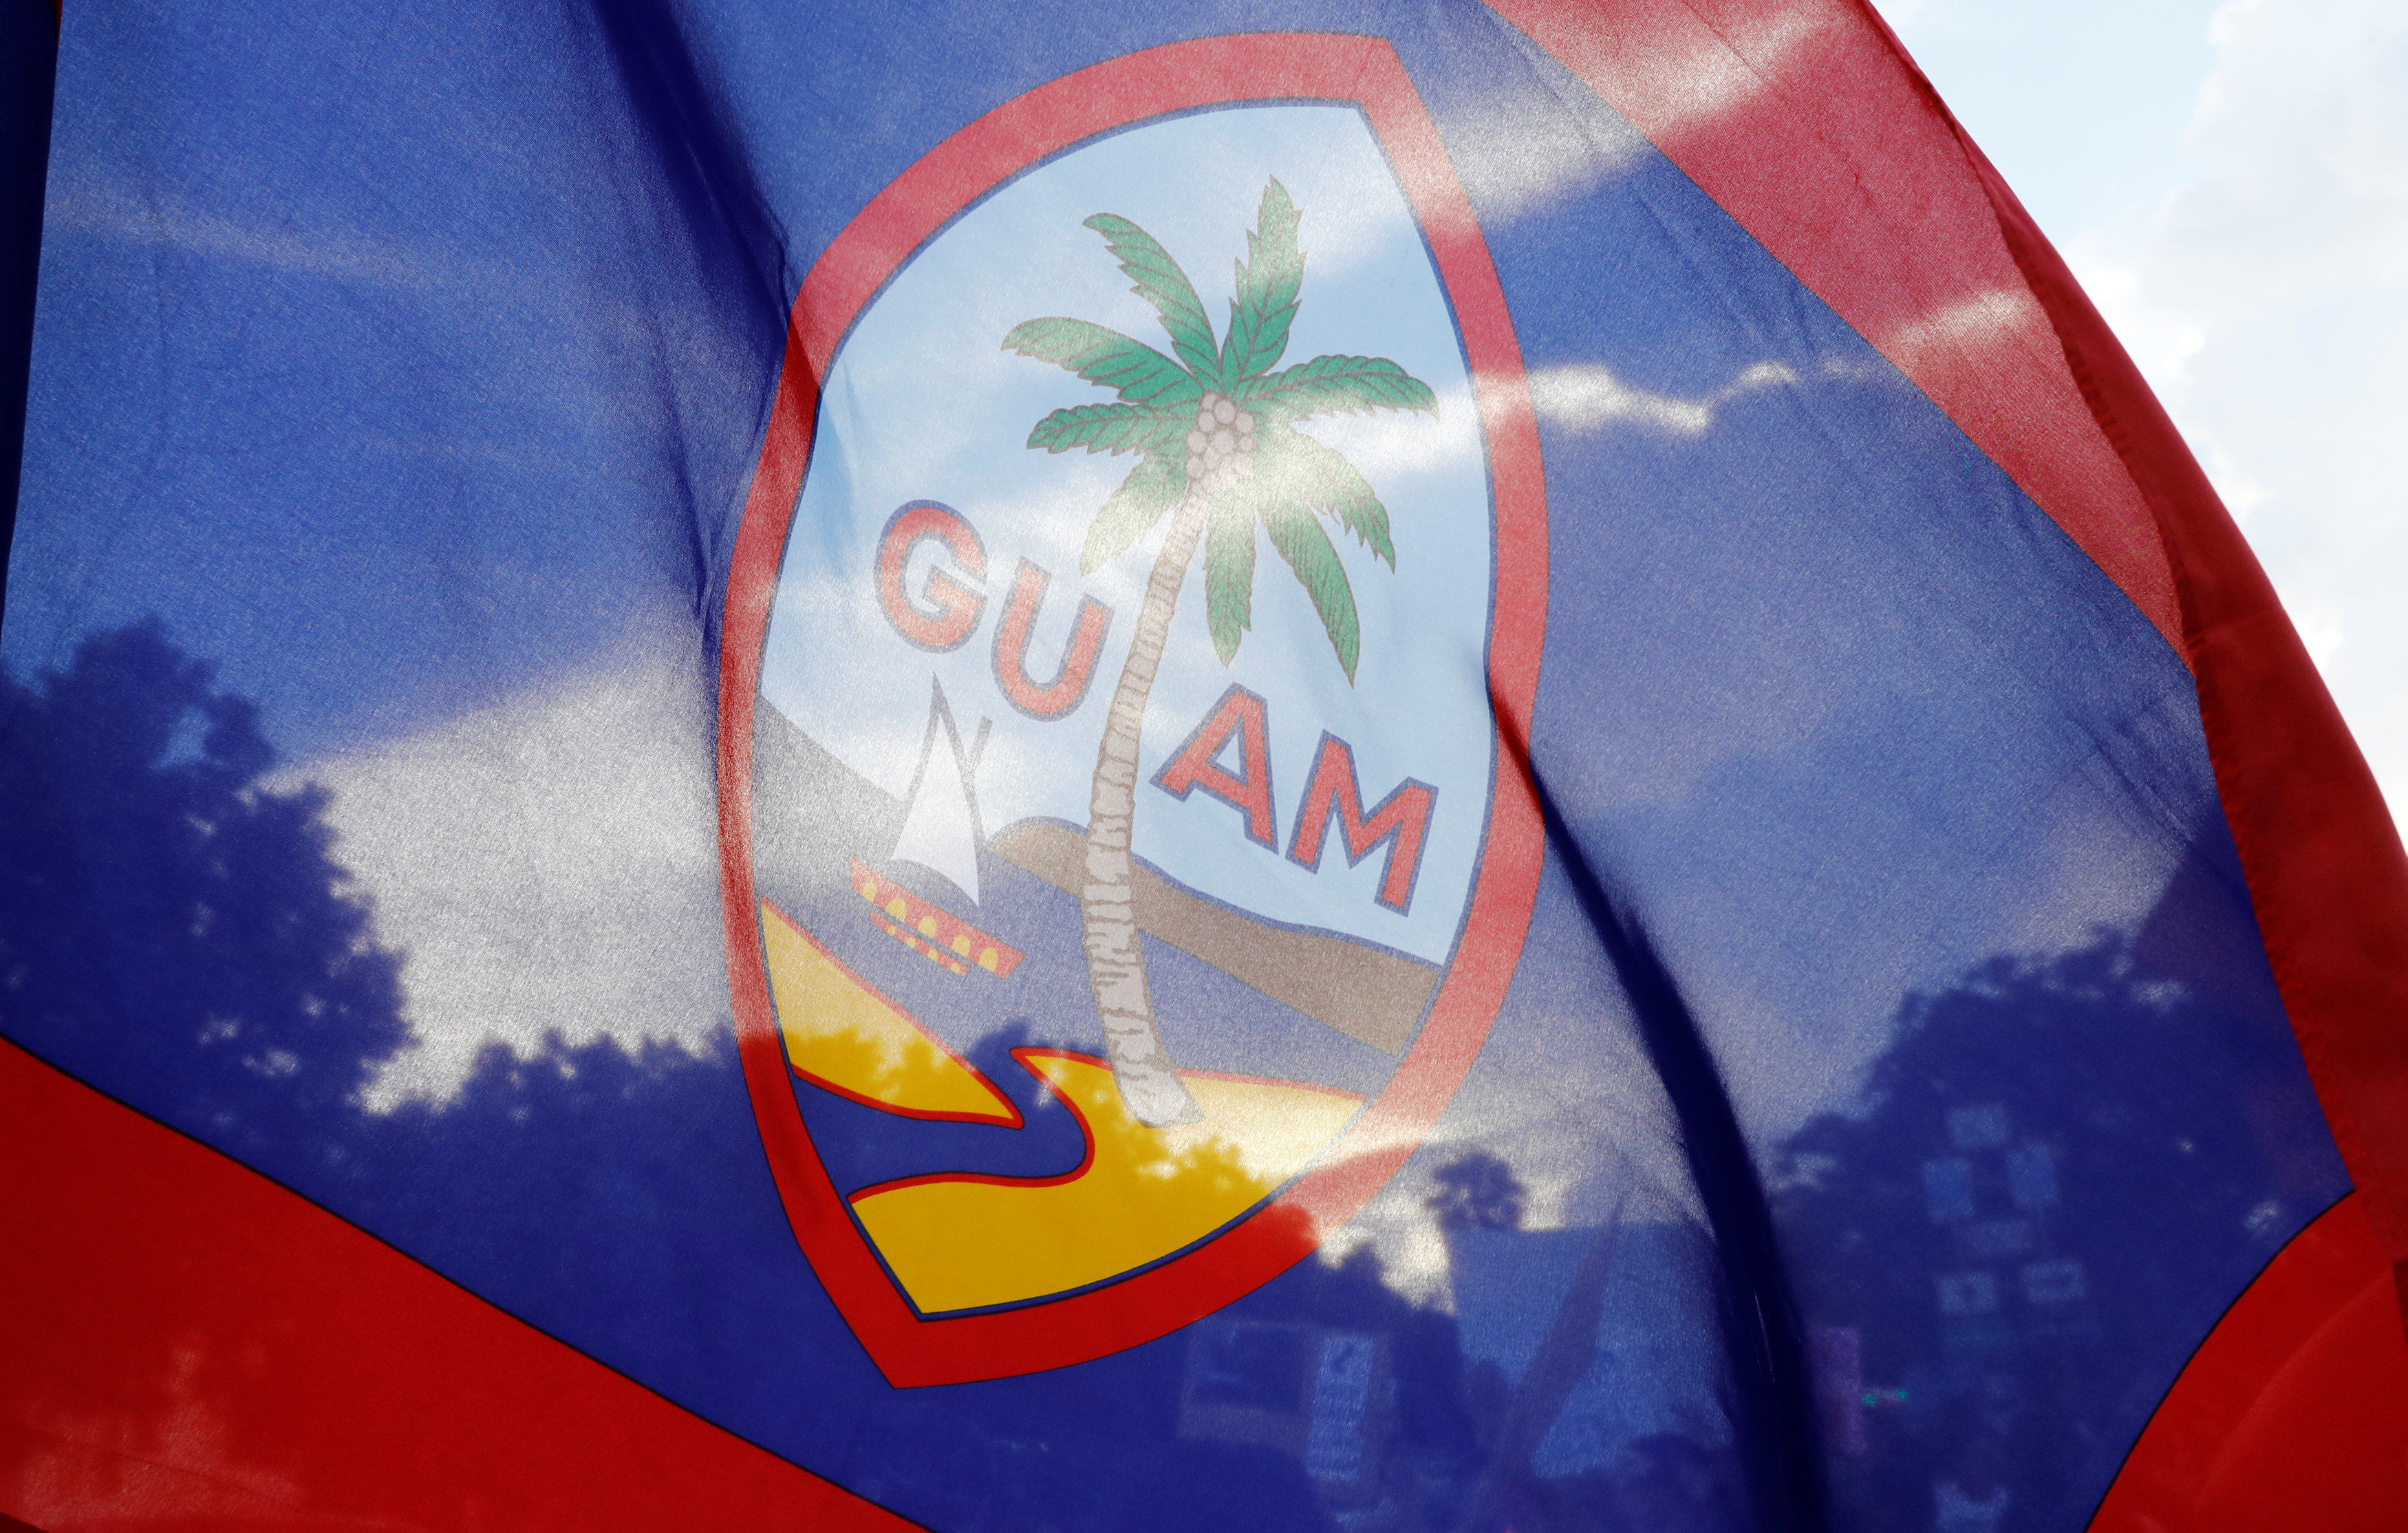 Local residents display a Guam flag during a peace rally at Chief Quipuha Park, on the island of Guam, a U.S. Pacific Territory, August 14, 2017. (REUTERS/Erik De Castro)